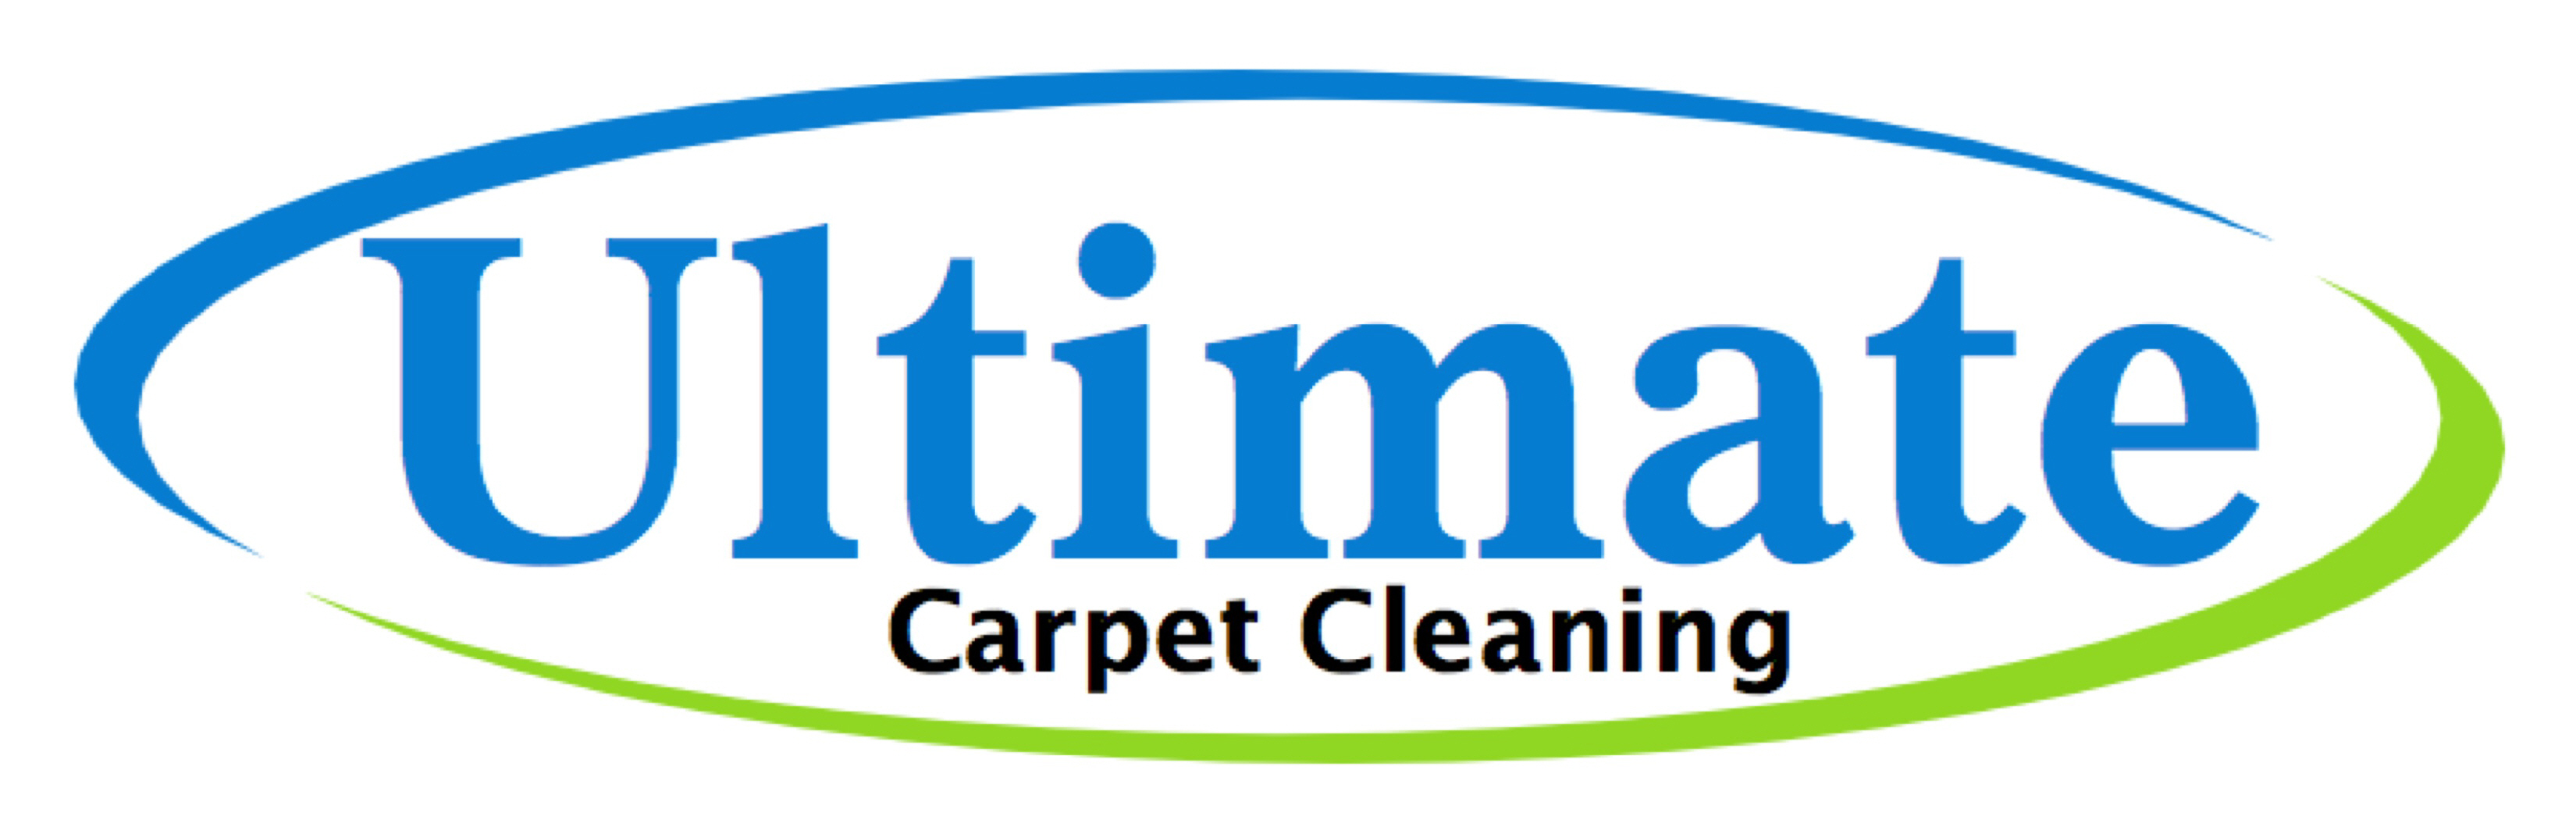 Carpet Cleaning Feature Ultimate Carpet Cleaning Boise